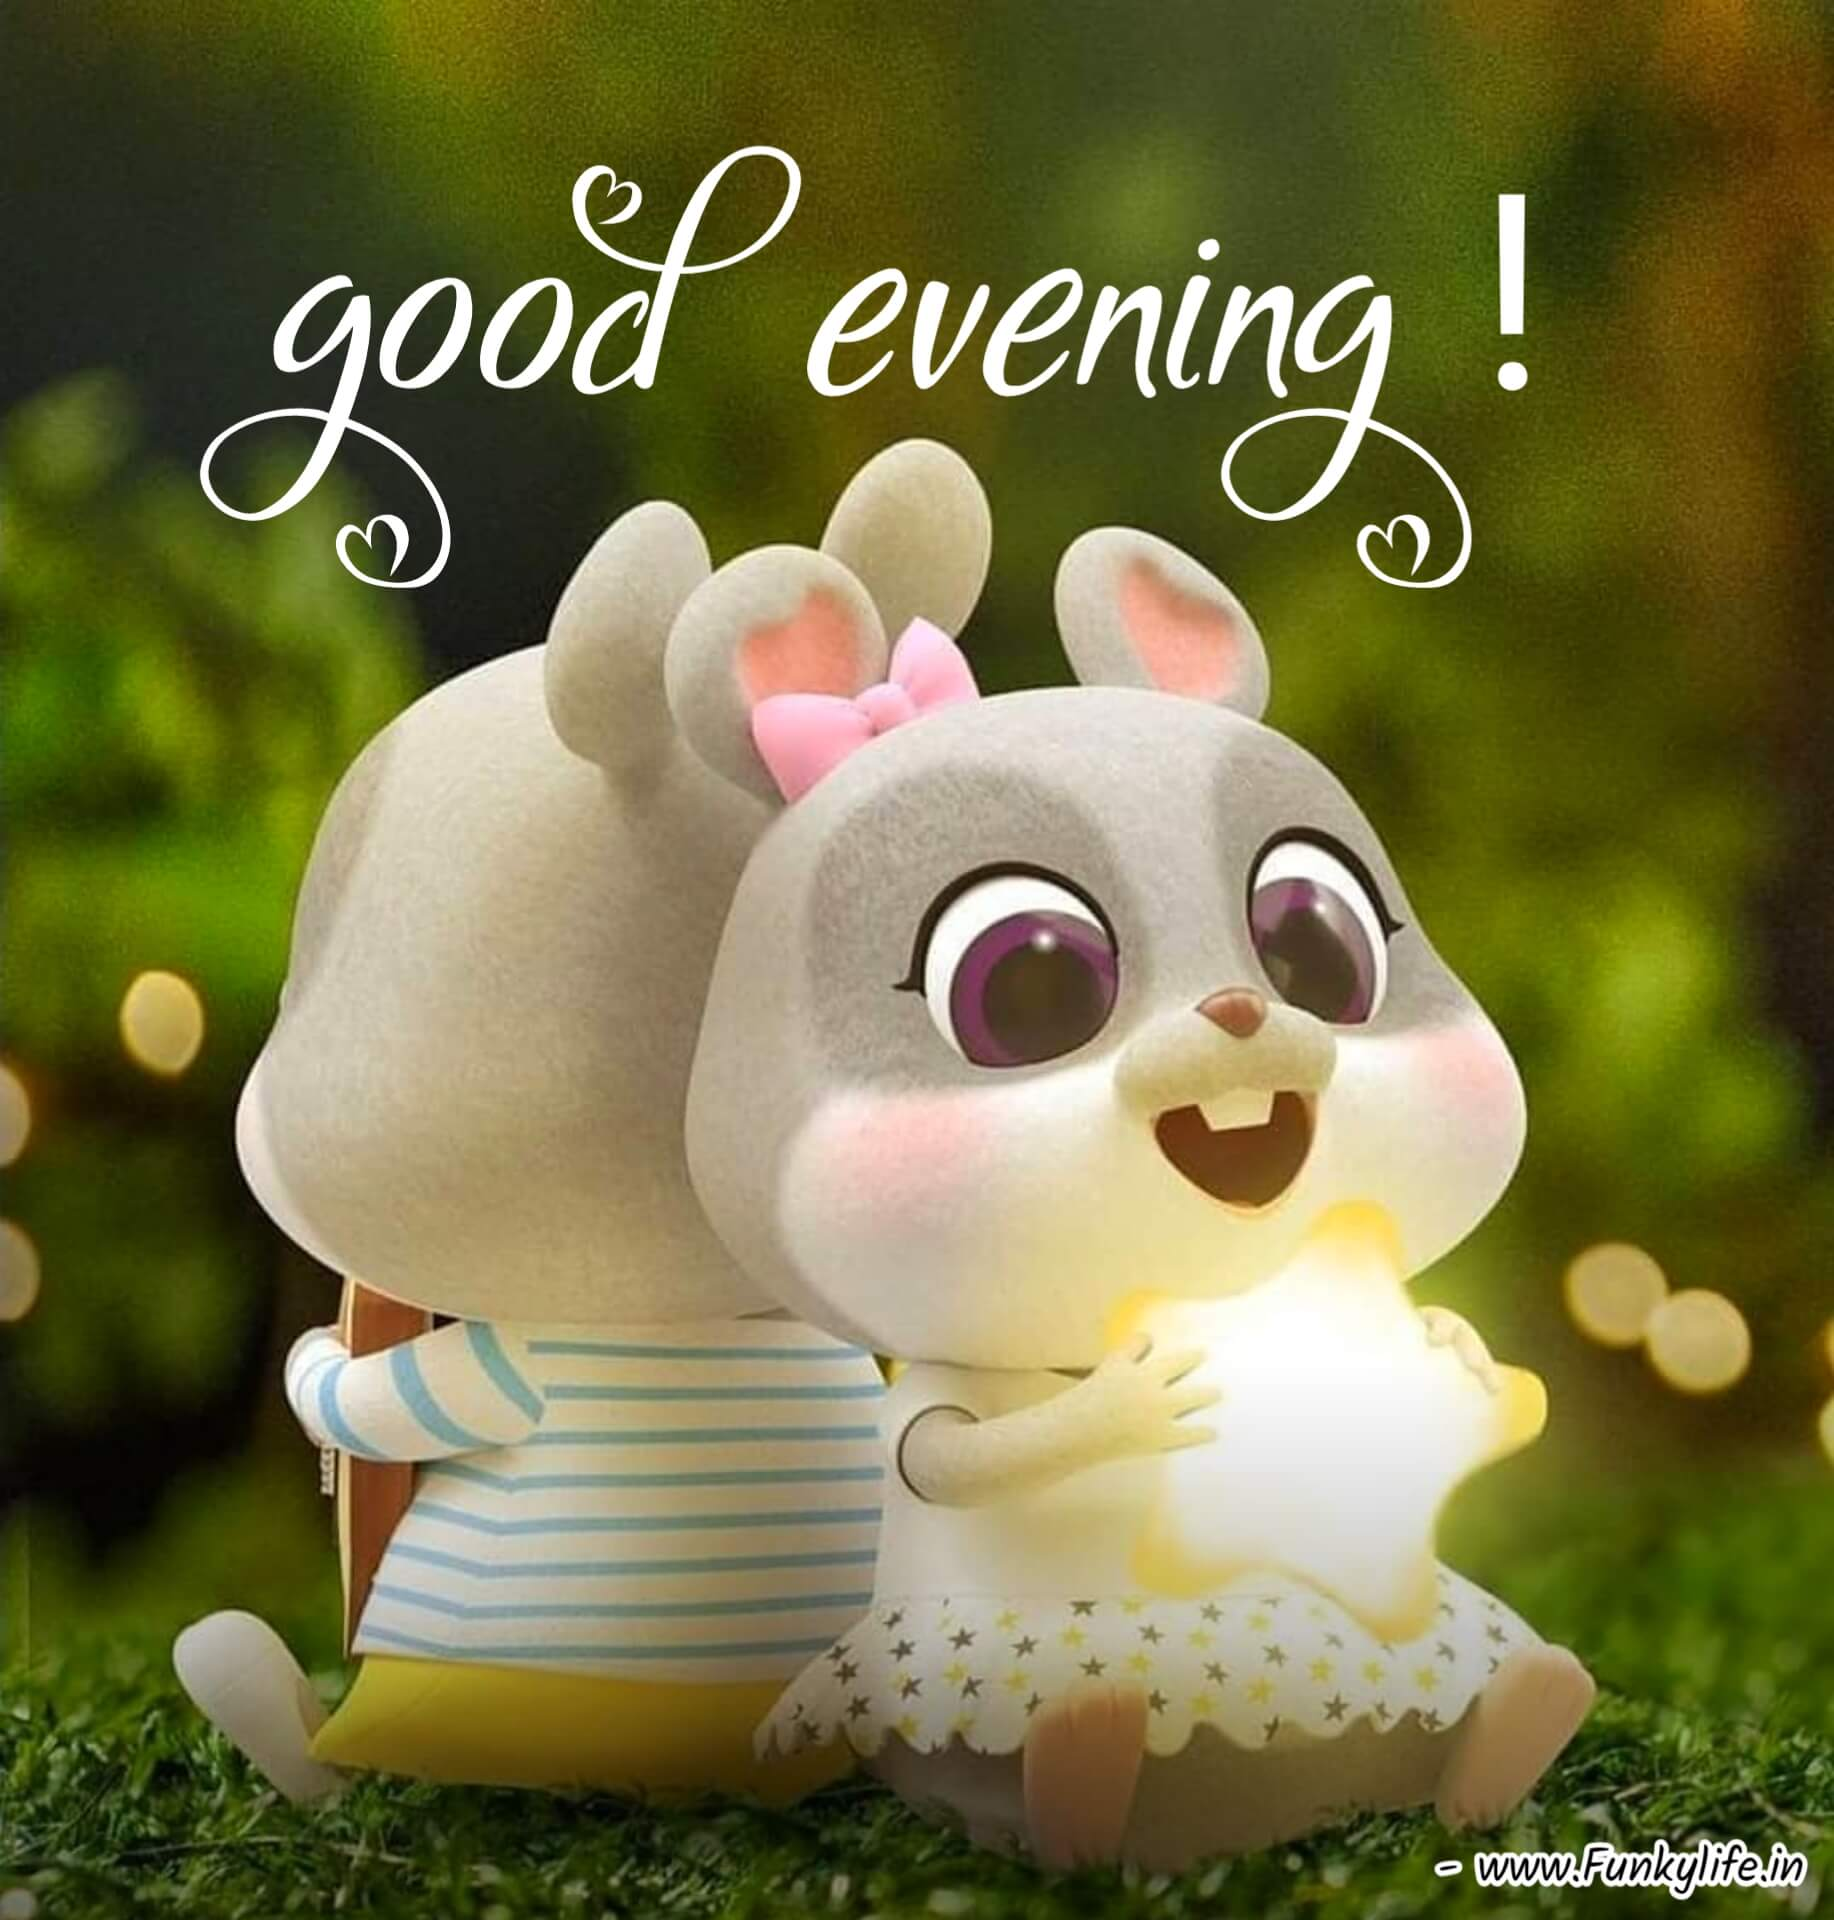 Cute Good Evening images